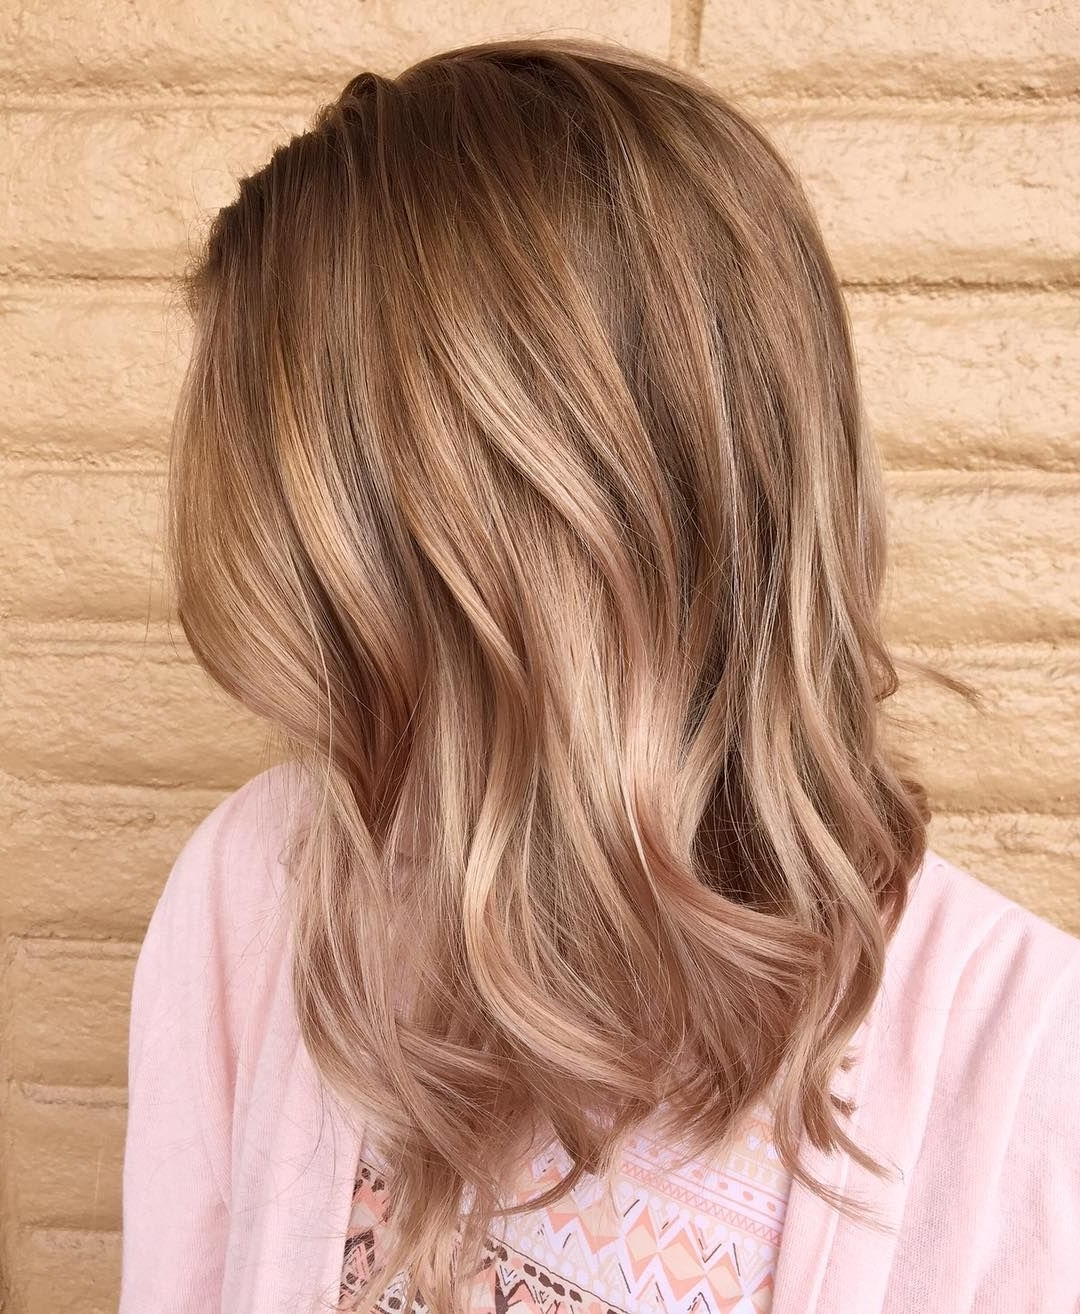 Most Recently Released Dark Blonde Into White Hairstyles Throughout 25 Stupendous Hairstyles With Dark Blonde Hair – Deep Golden Tones (View 17 of 20)